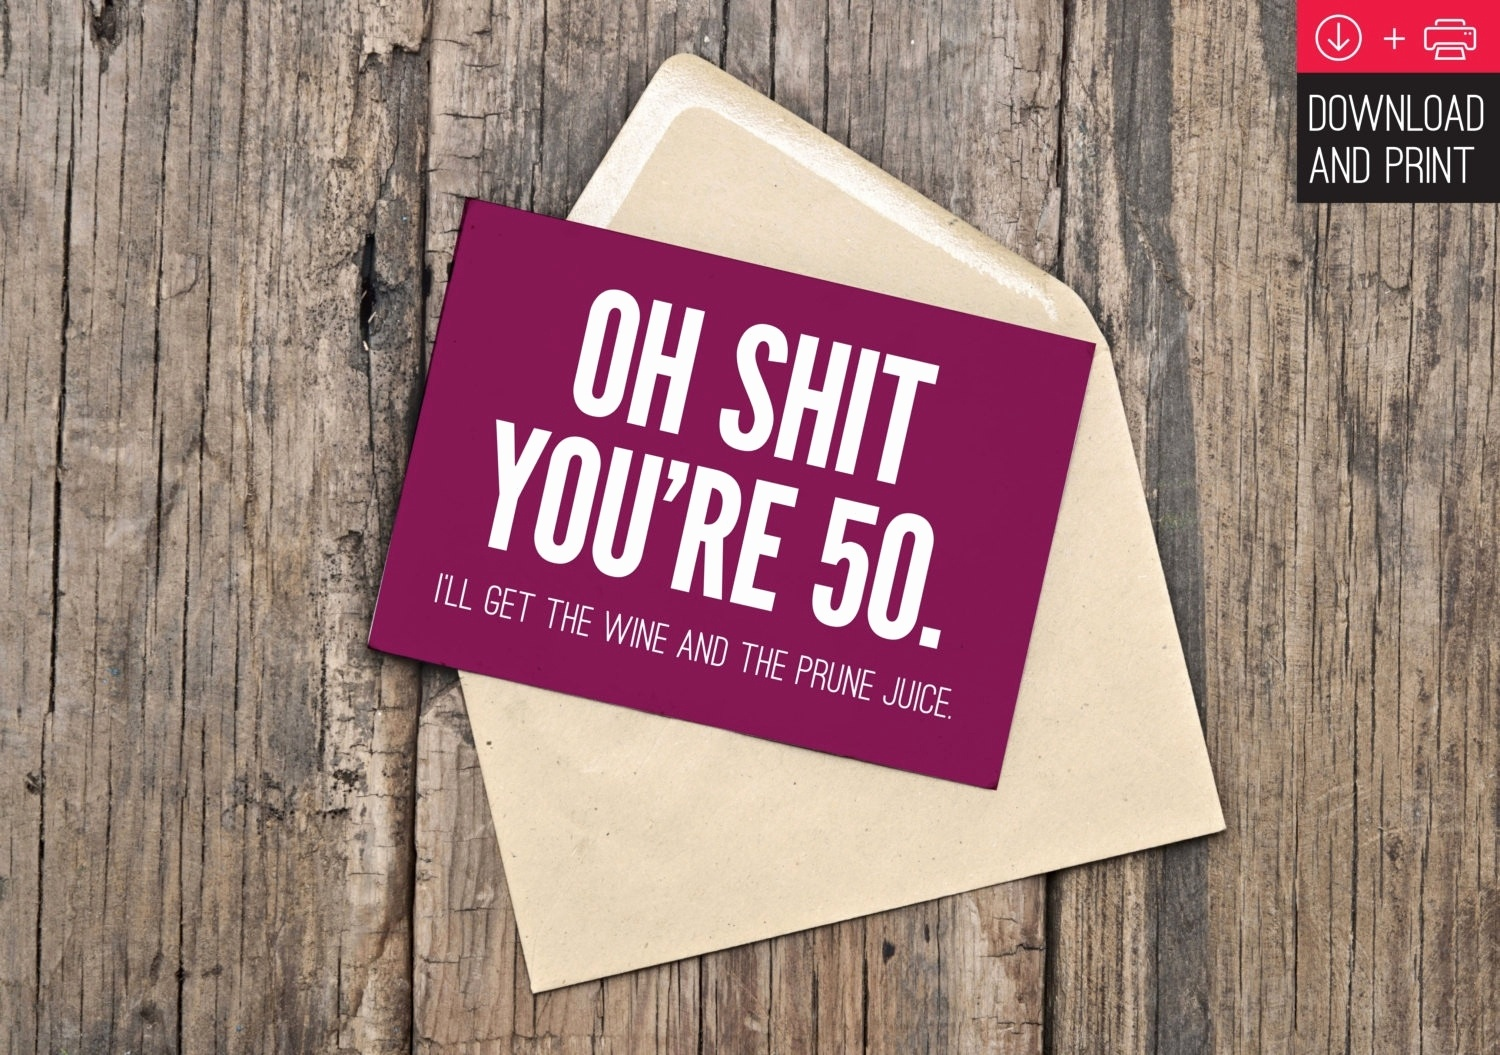 92+ Funny 50Th Birthday Cards For Him - Happy 50Th Birthday Cards - Free Printable 50Th Birthday Cards Funny